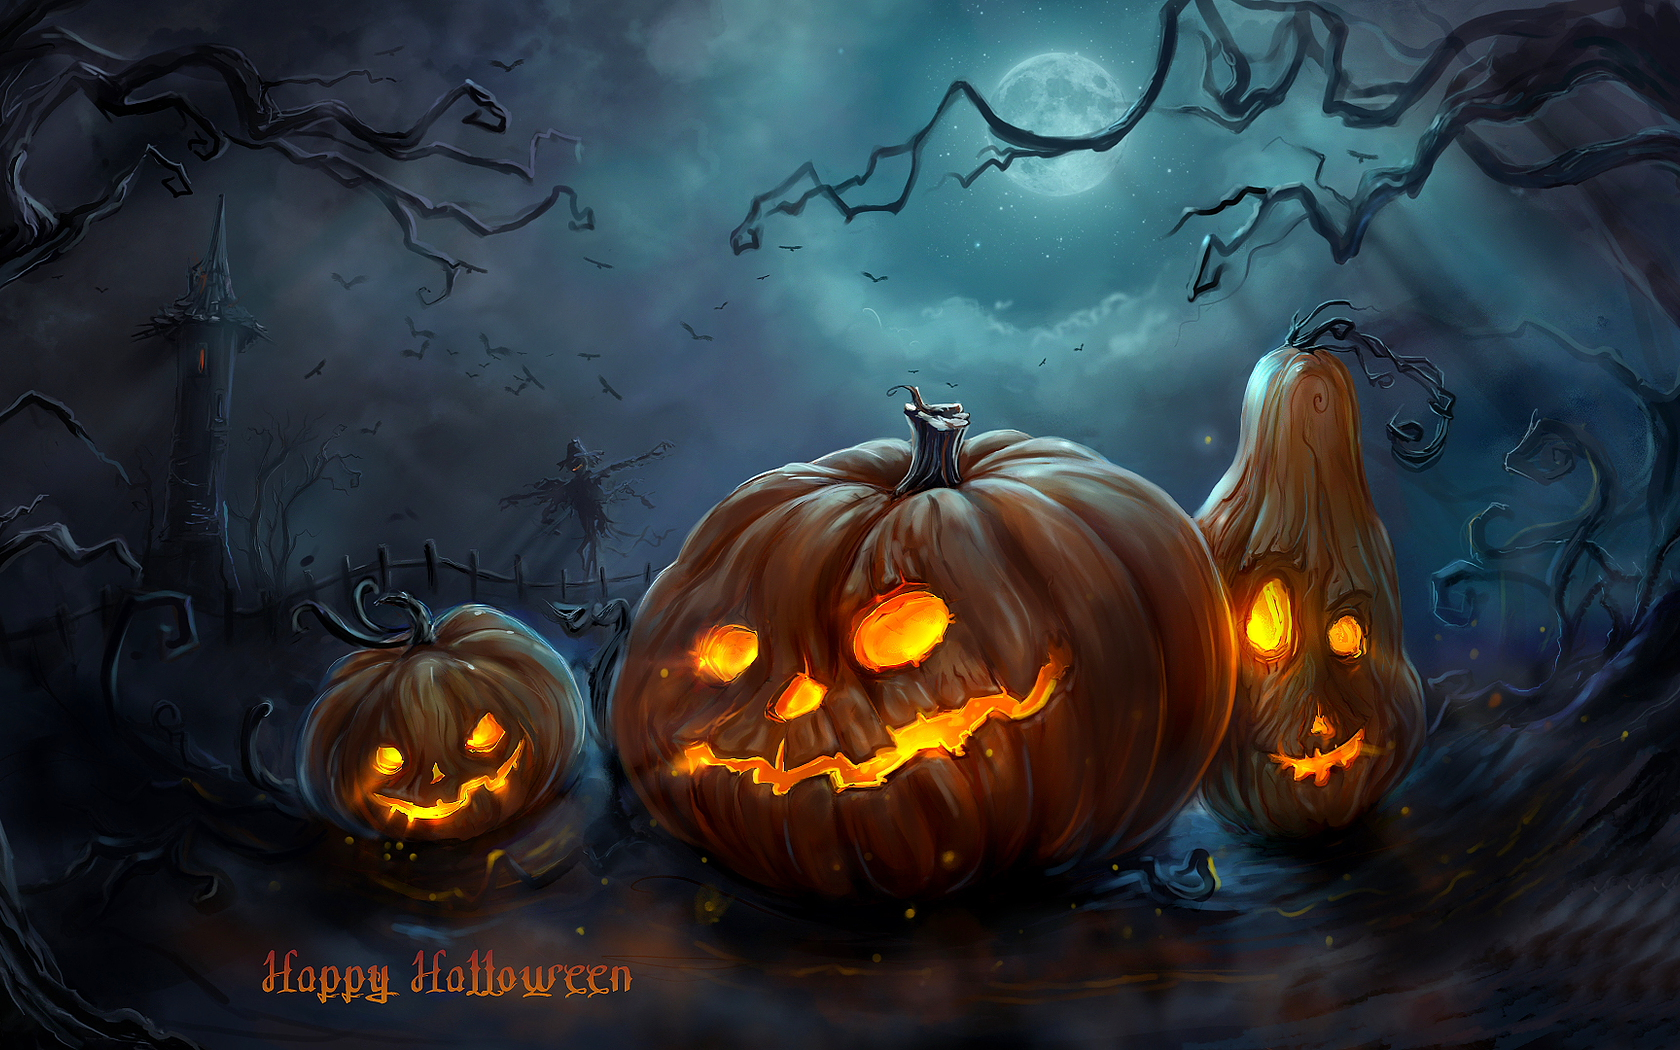 Index of /catalog/view/theme/halloween/image/halloween